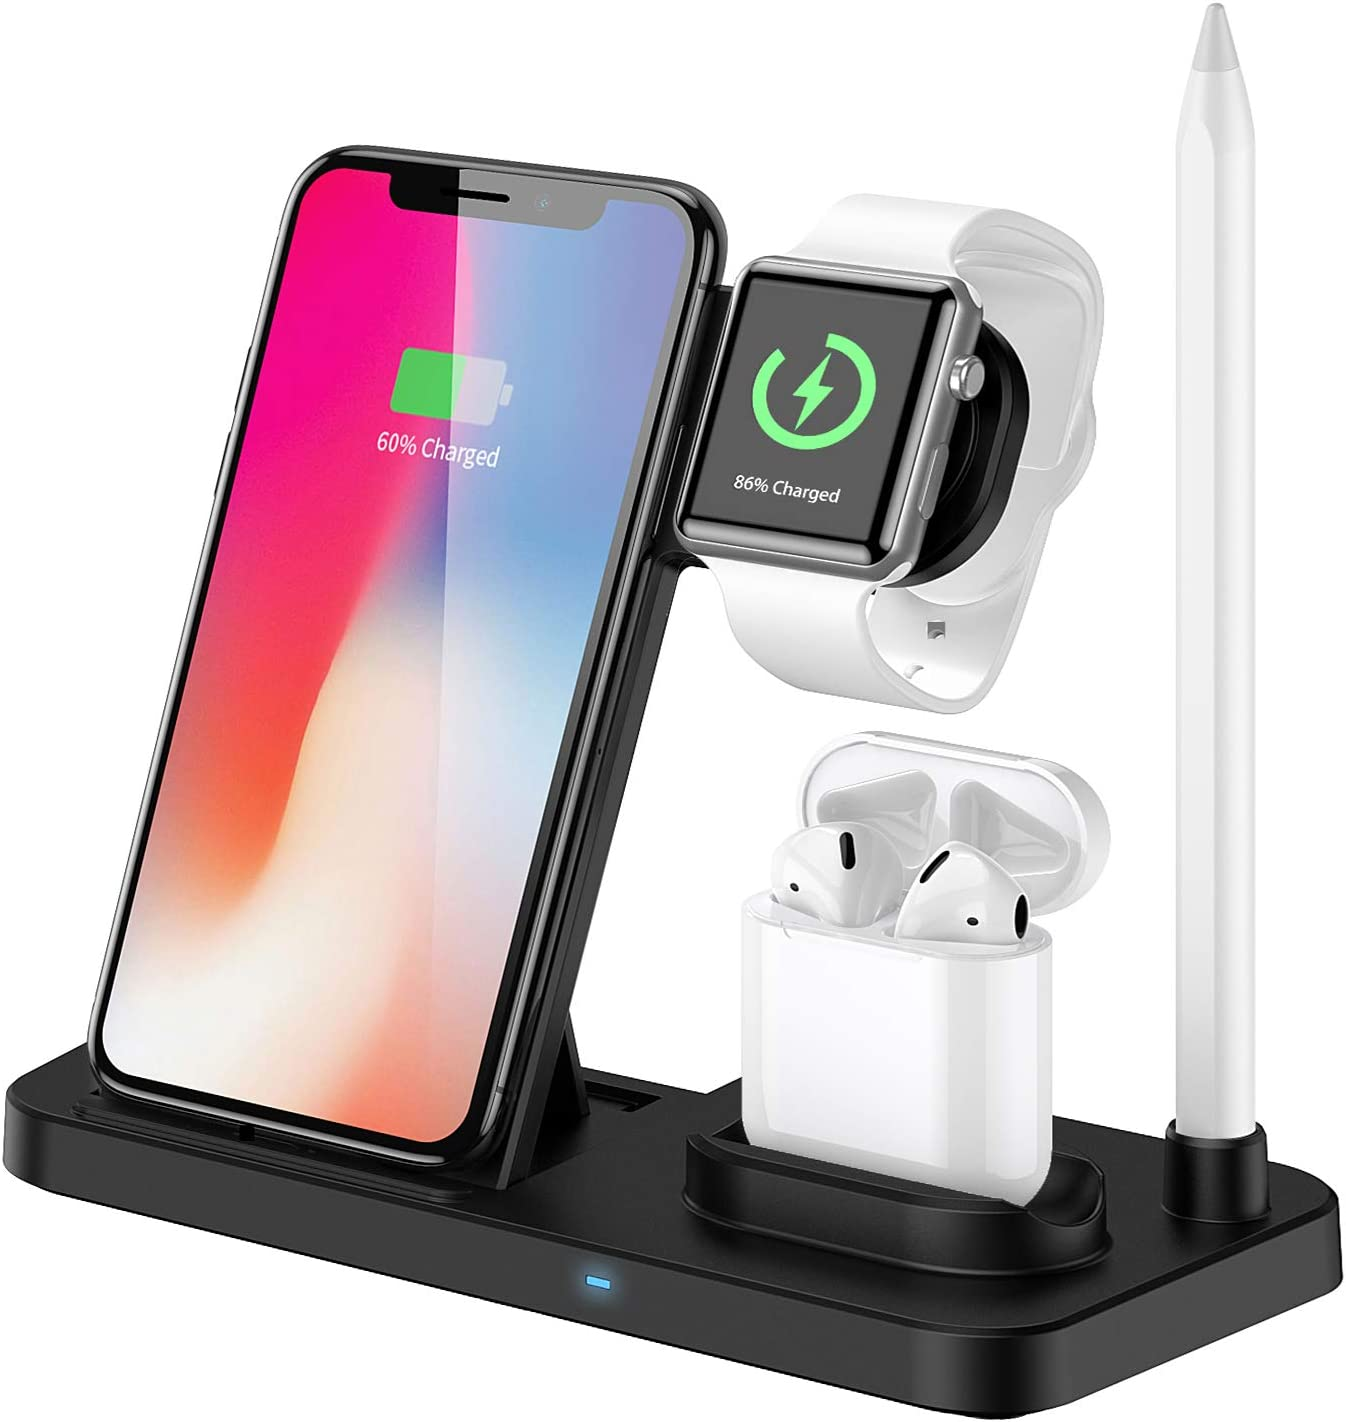 Wireless Charger, 4 in 1 Charging Station, Wireless Charging Stand Dock Charger Pad Compatible with Apple Watch and iPhone Airpod iPhone X/XS/XR/Xs Max/8 Plus iWatch Airpods,Samsung. (Black)